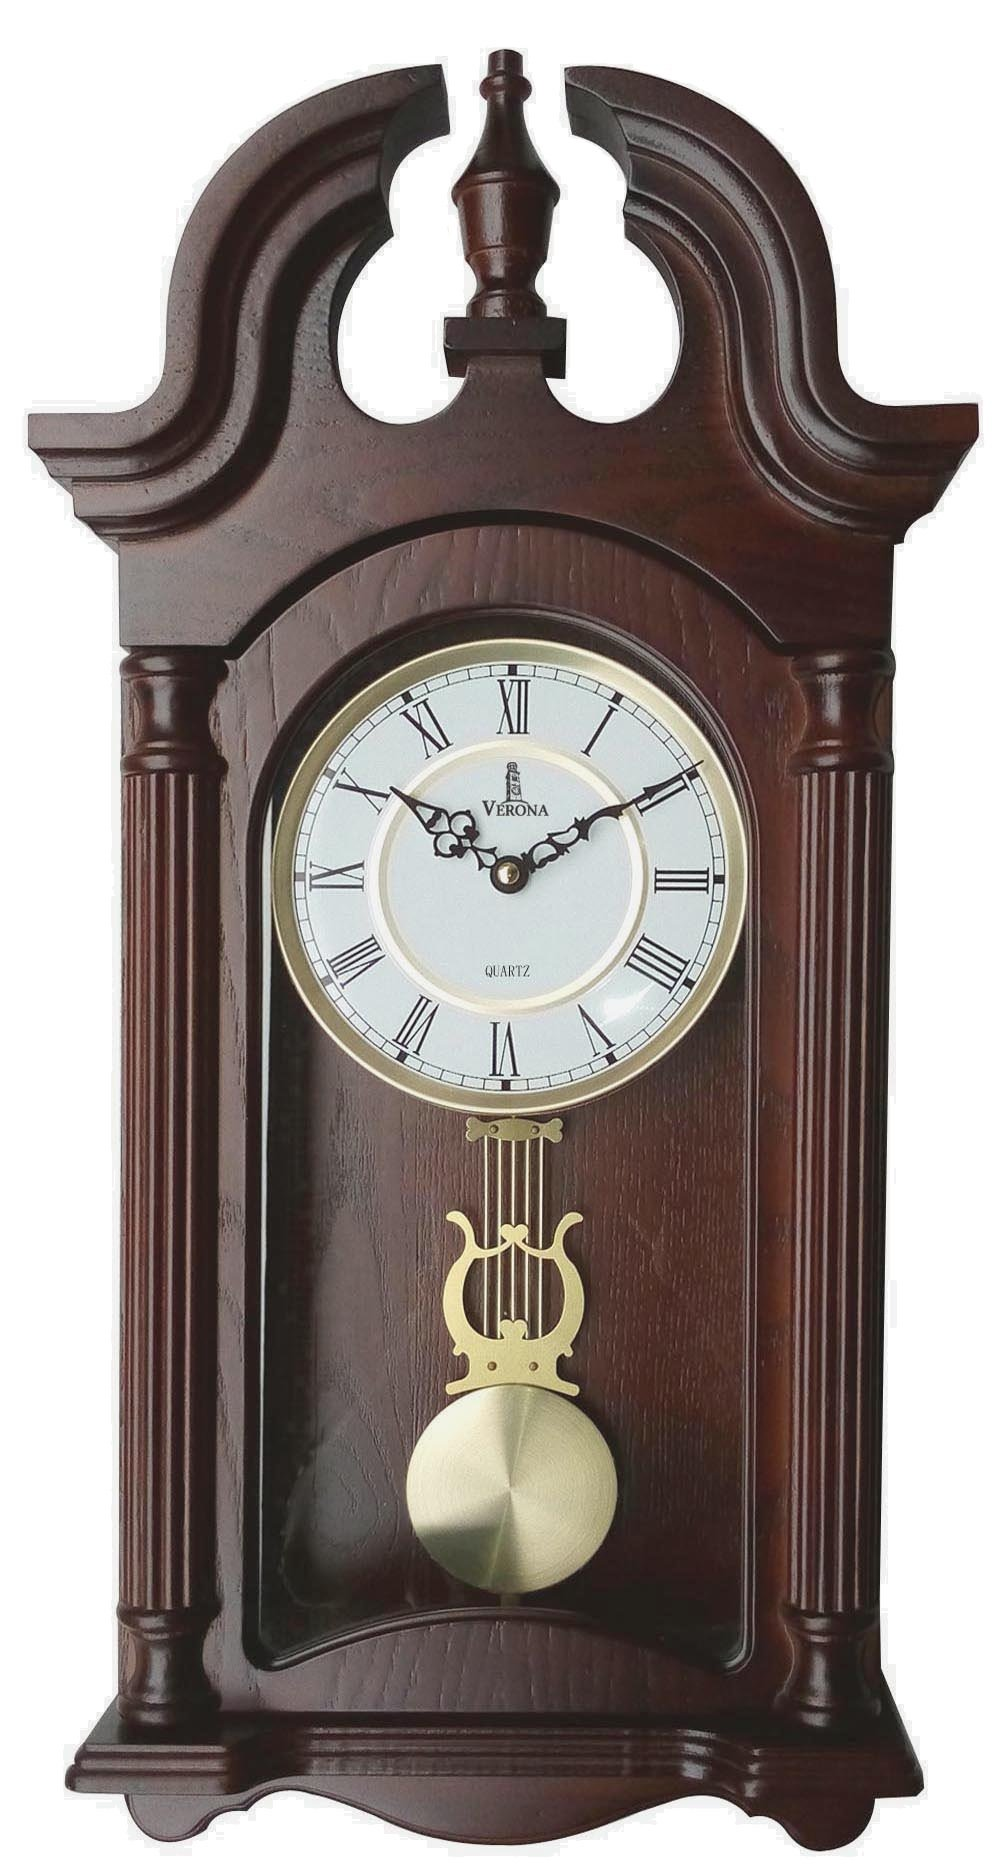 Verona Stylish Wood Pendulum Wall Clock with Glass Front - Elegant & decorative wood clock with dark brown finish – 23.5 x 9.25 x 2.75 inch – Quartz movement, battery operated & quiet